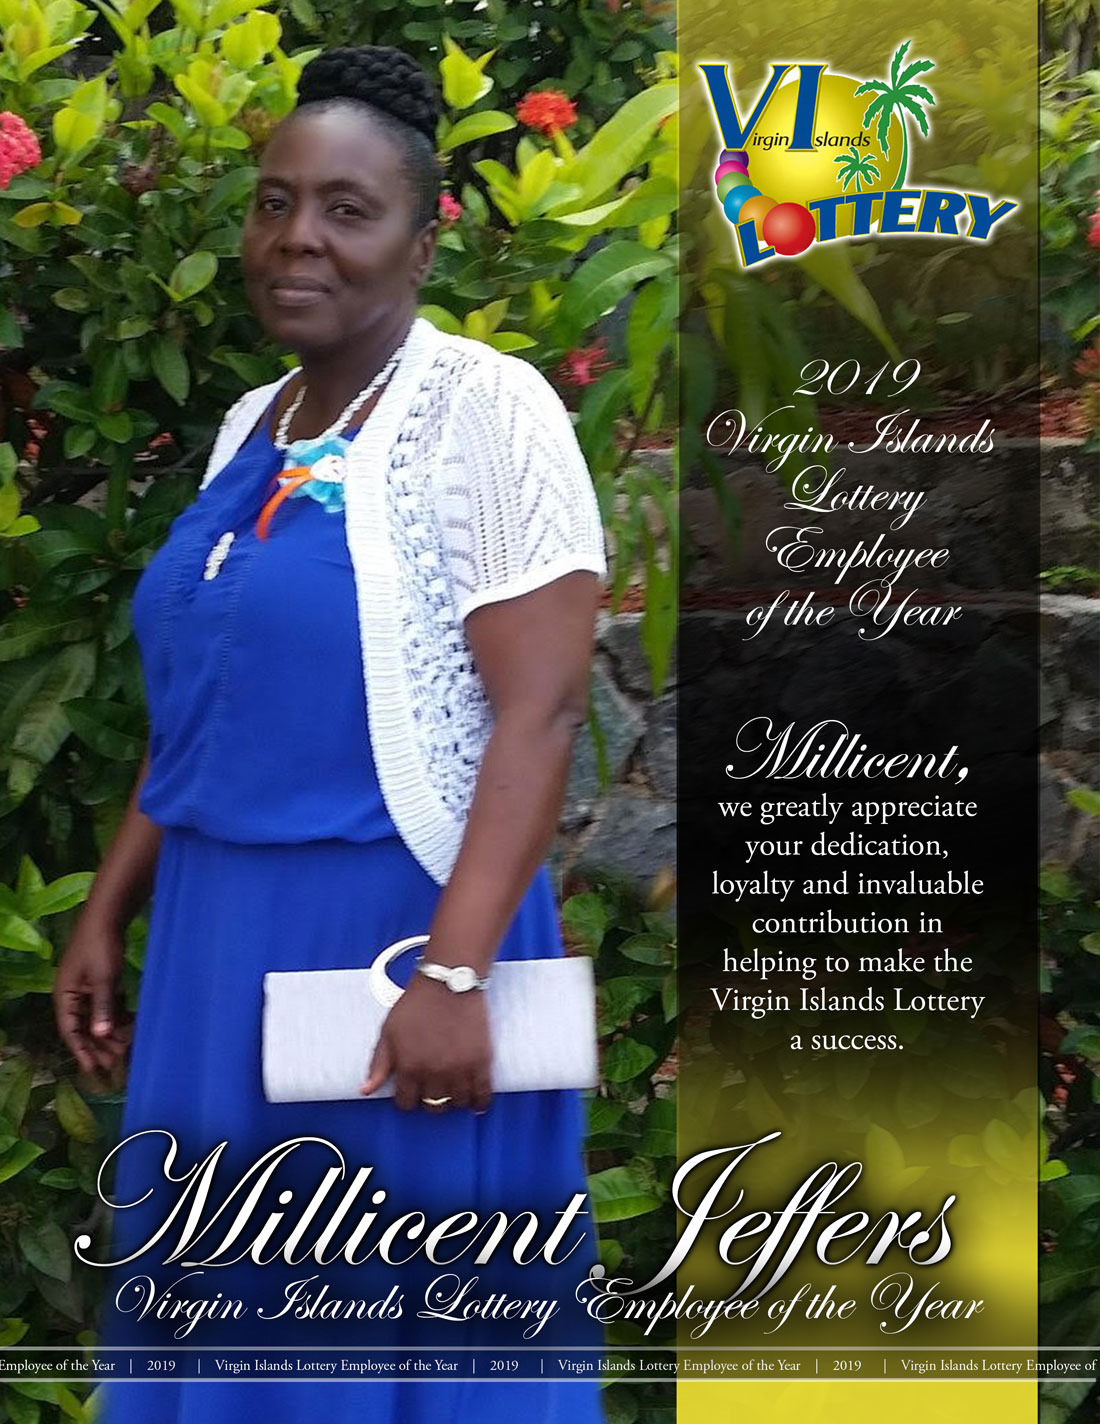 Millicent Jeffers - 2019 Virgin Islands Lottery Employee of the Year